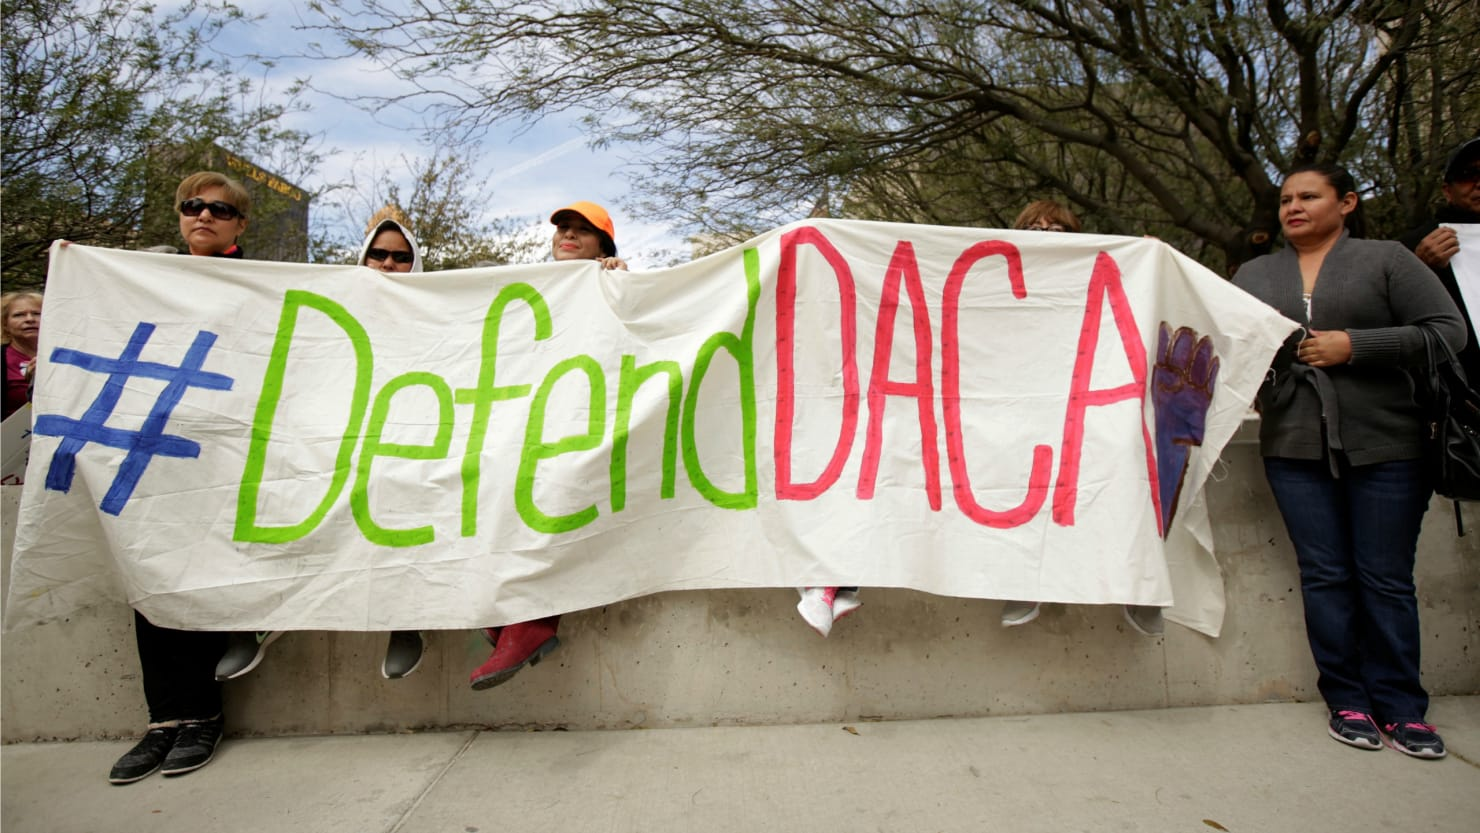 SC Refuses to Hear DACA challenge